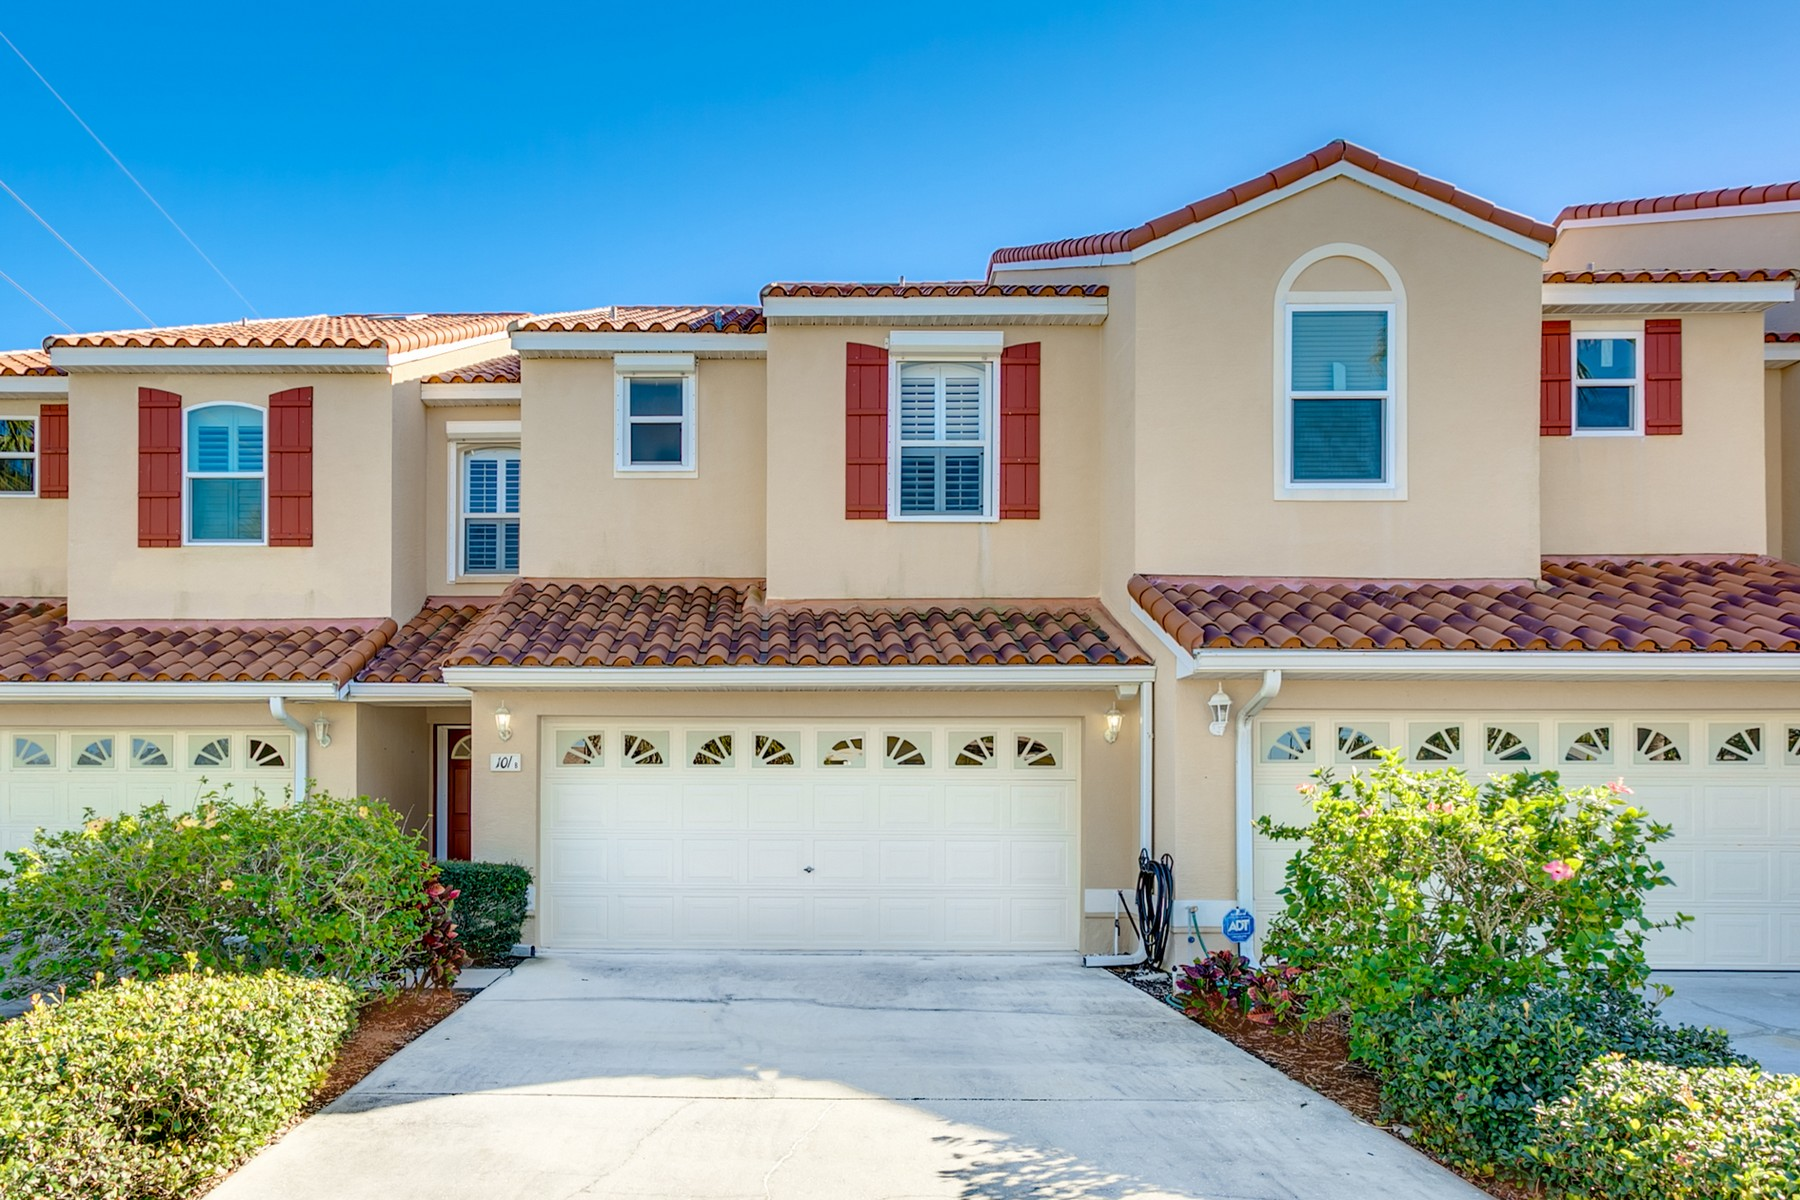 Townhouse for Sale at 101-B Melbourne Ave 101-B Melbourne Ave. Indialantic, Florida, 32903 United States